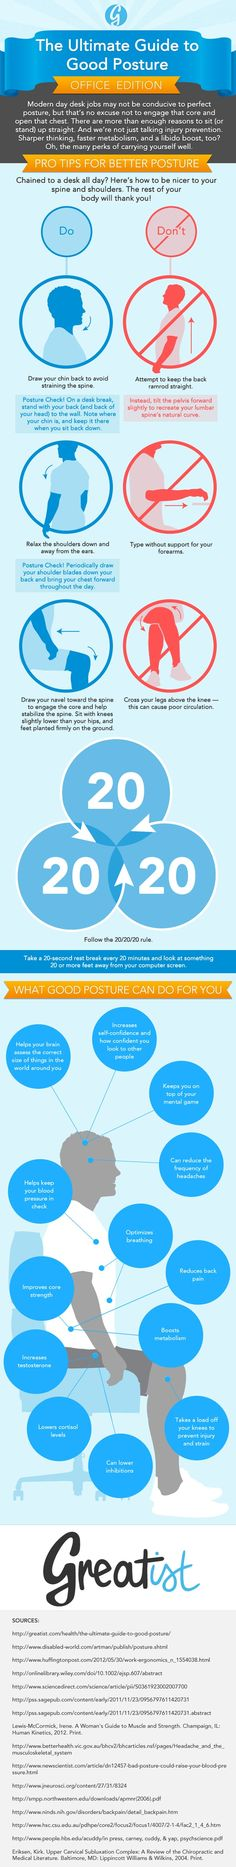 The Ultimate Guide to Good Posture at Work – Infographic | Charlene Hutsebaut